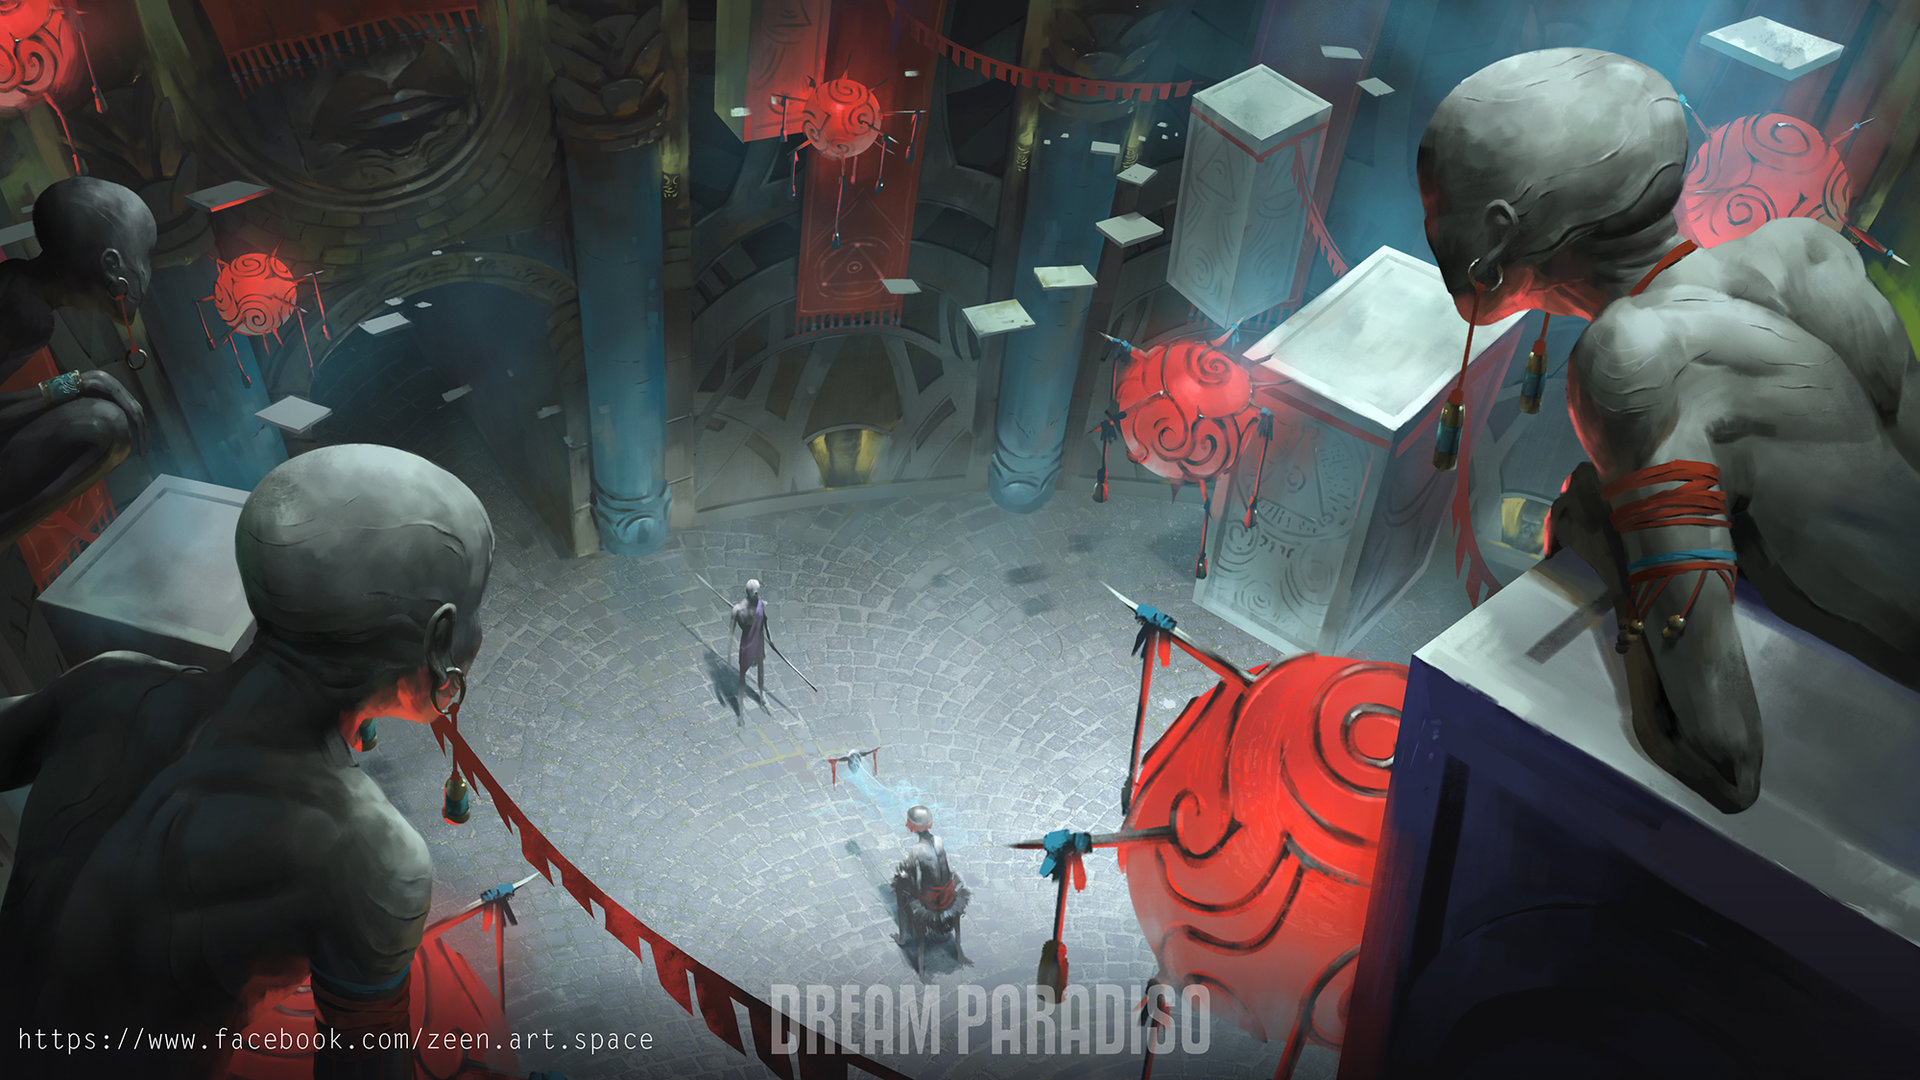 Zeen chin dream paradiso environment concept art2